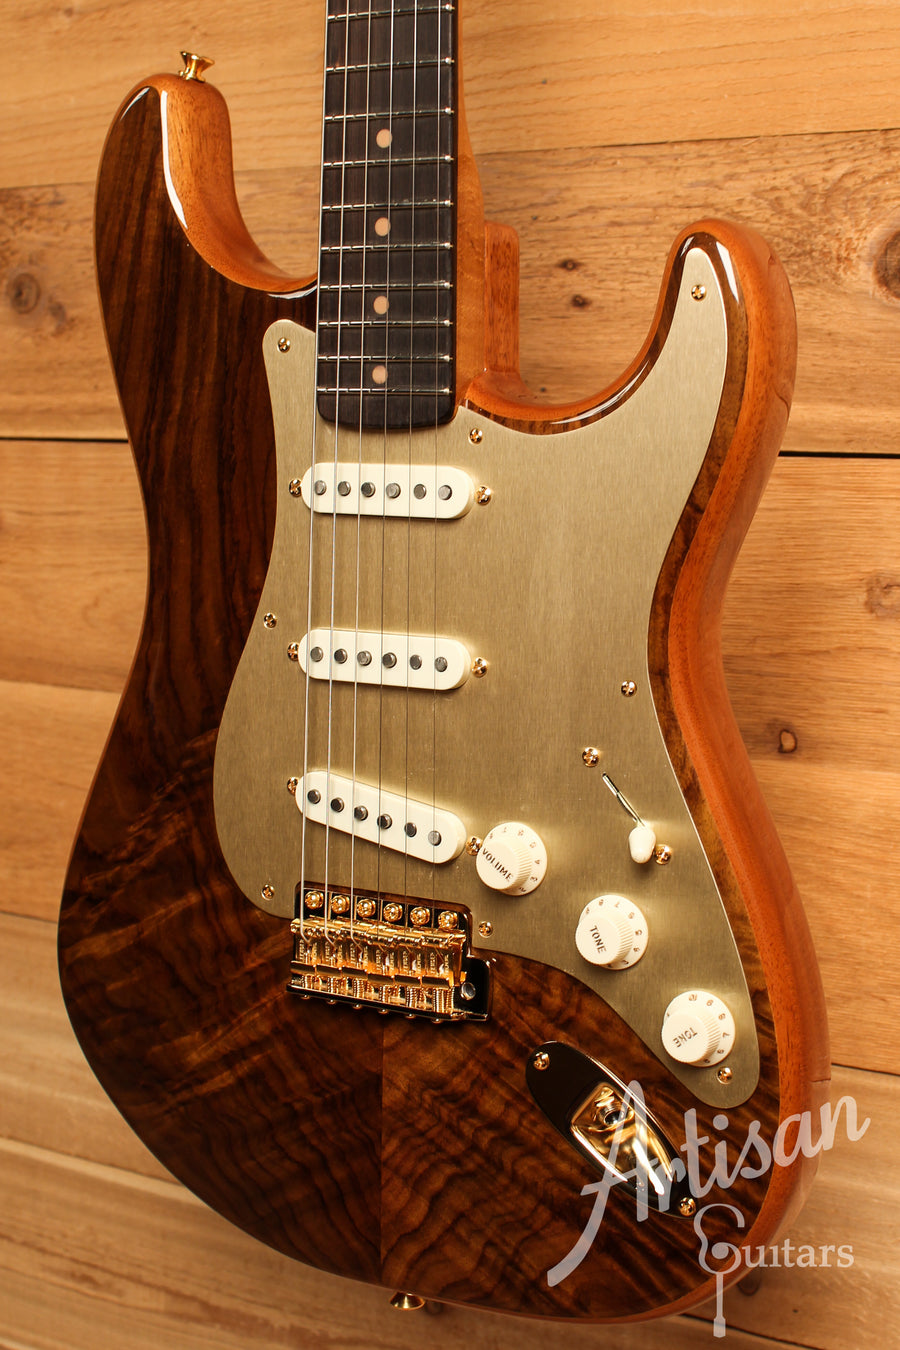 Fender Custom Shop Artisan Collection Stratocaster Figured Rosewood ID-11157 - Artisan Guitars